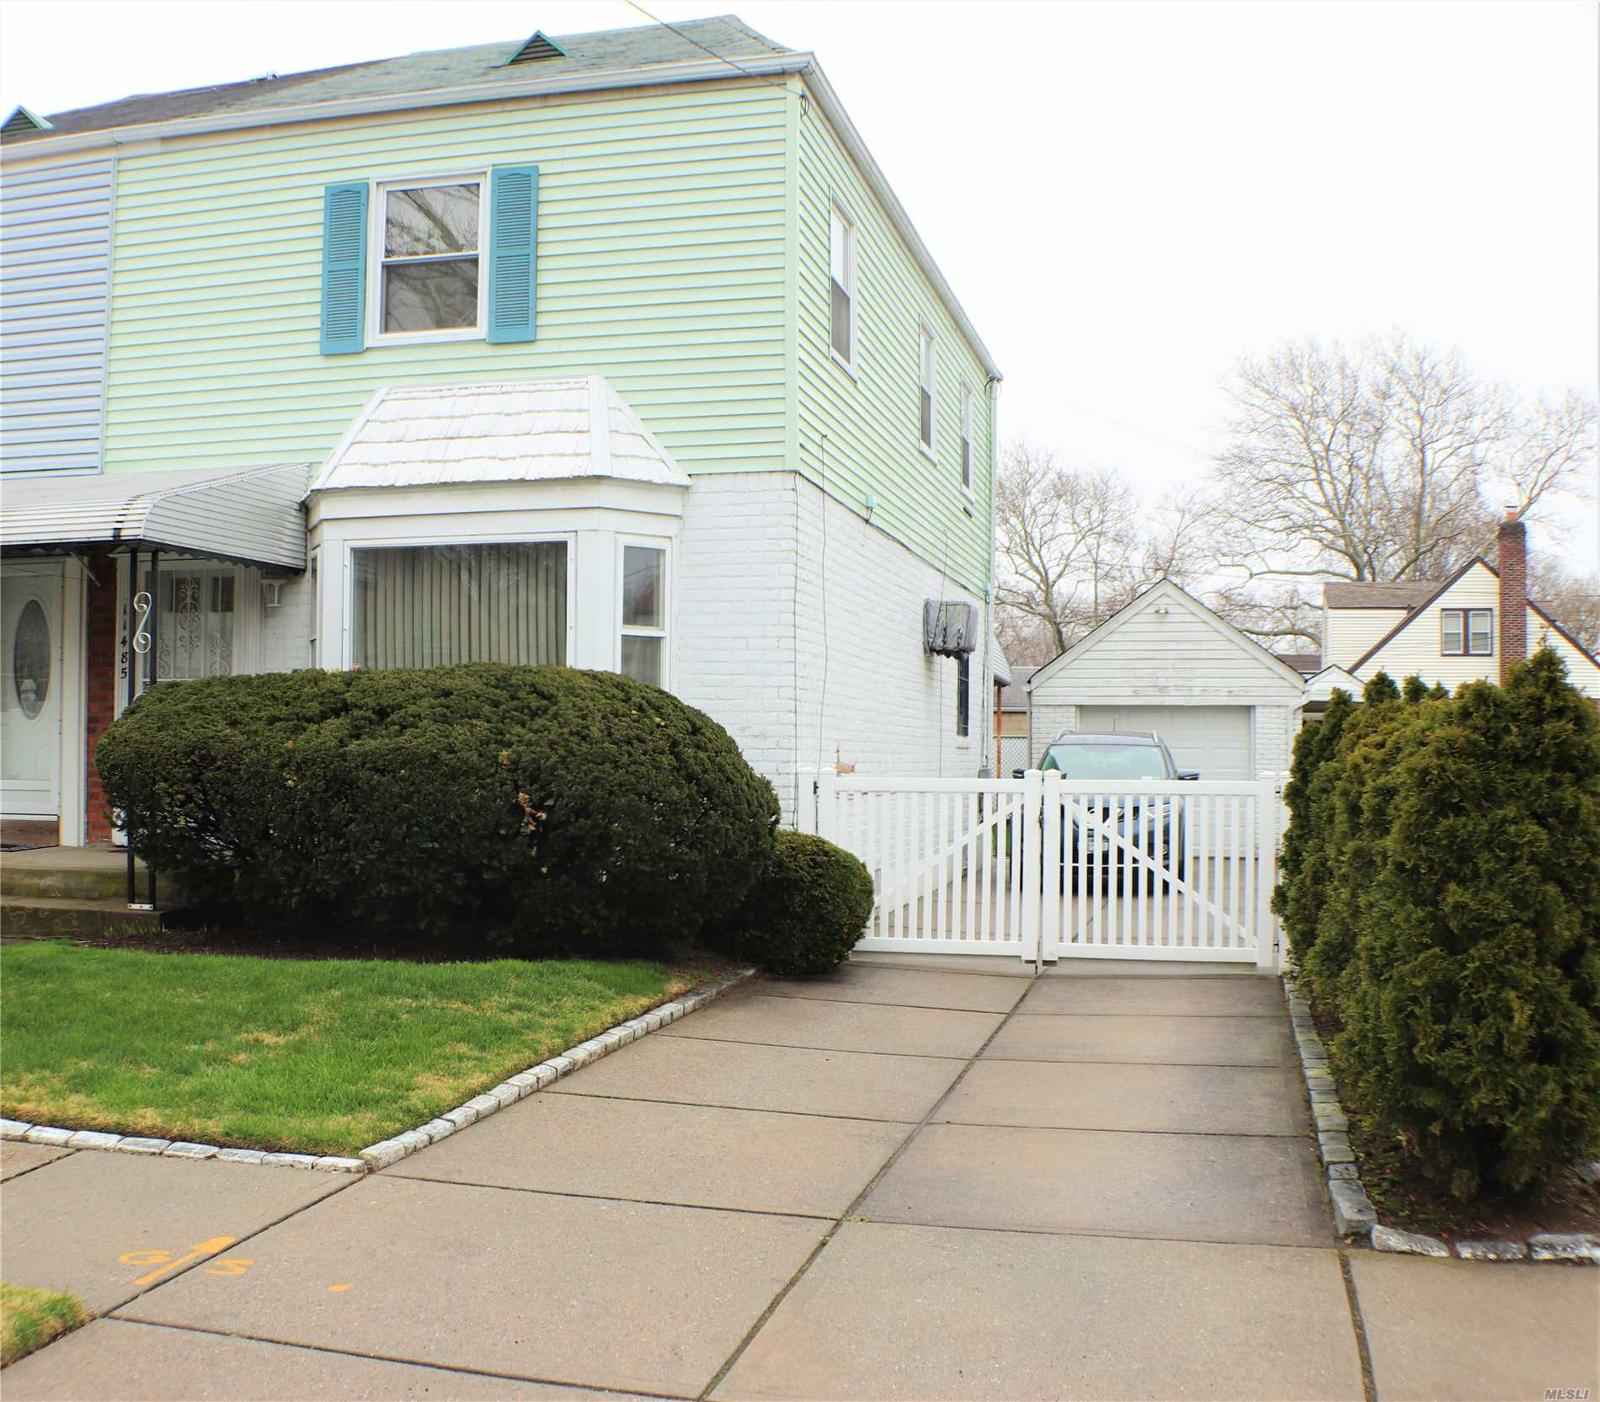 cambria heights The new york times has 6 homes for sale in cambria heights, queens find the latest open houses, price reductions and homes new to the market with guidance from experts who live here too.